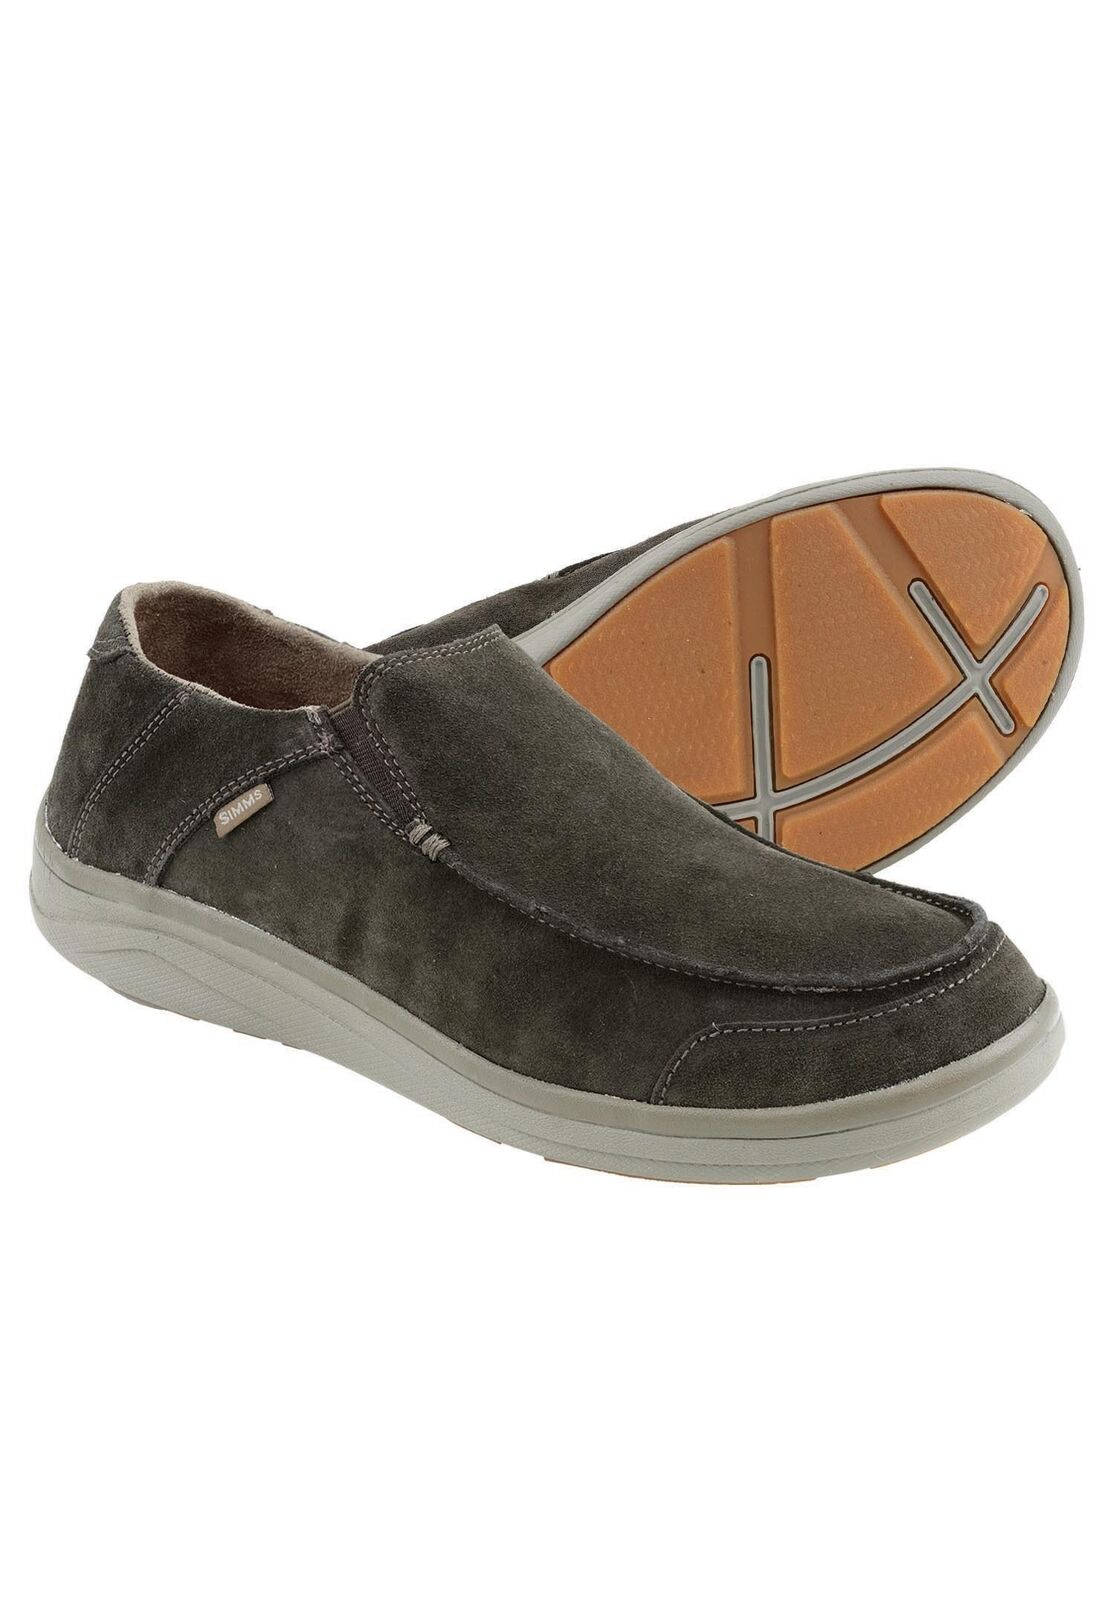 Simms Westshore  Leather  Slip On shoes Dark Olive - Size 11 -CLOSEOUT  wholesale prices